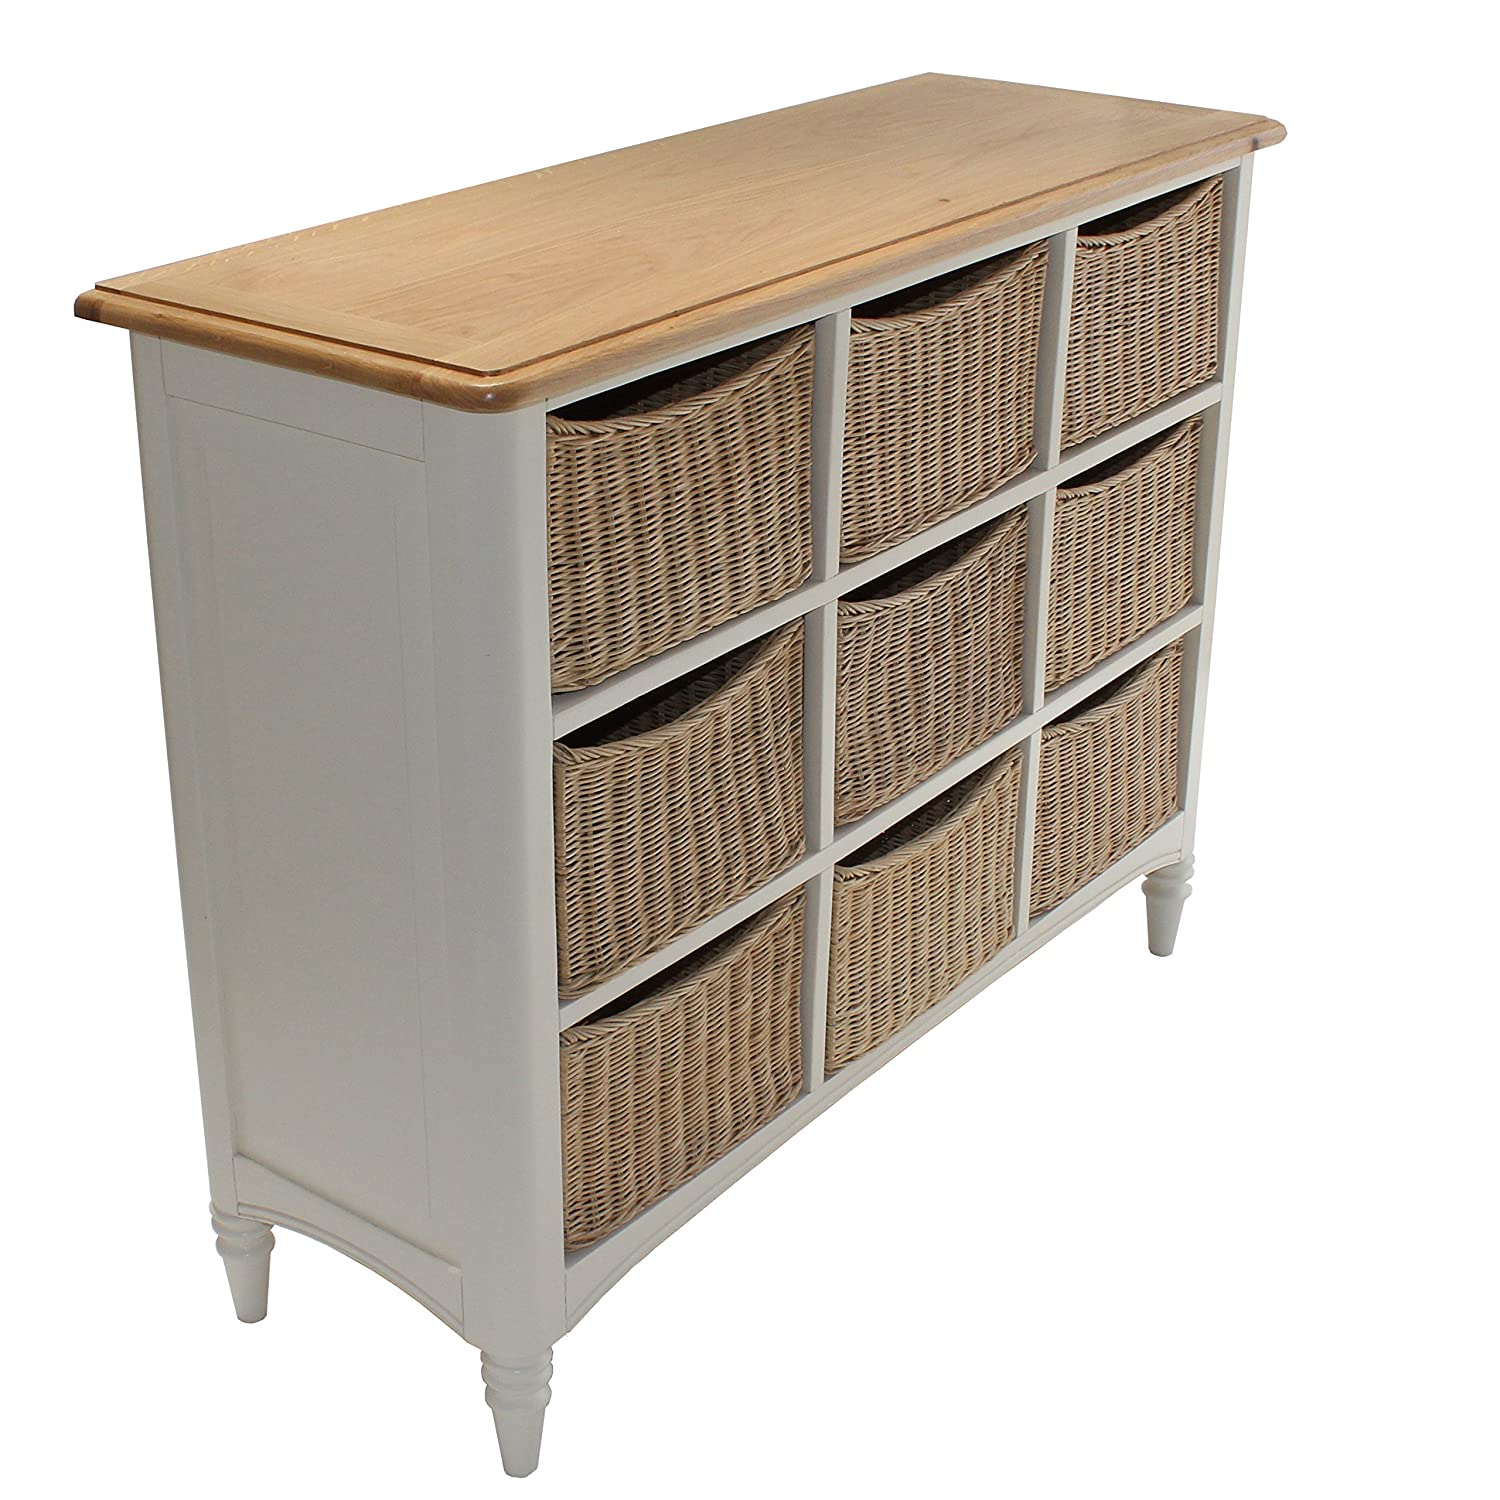 melford multi chest nine drawer storage unit wicker baskets painted oak top storage units with baskets: white storage unit wicker